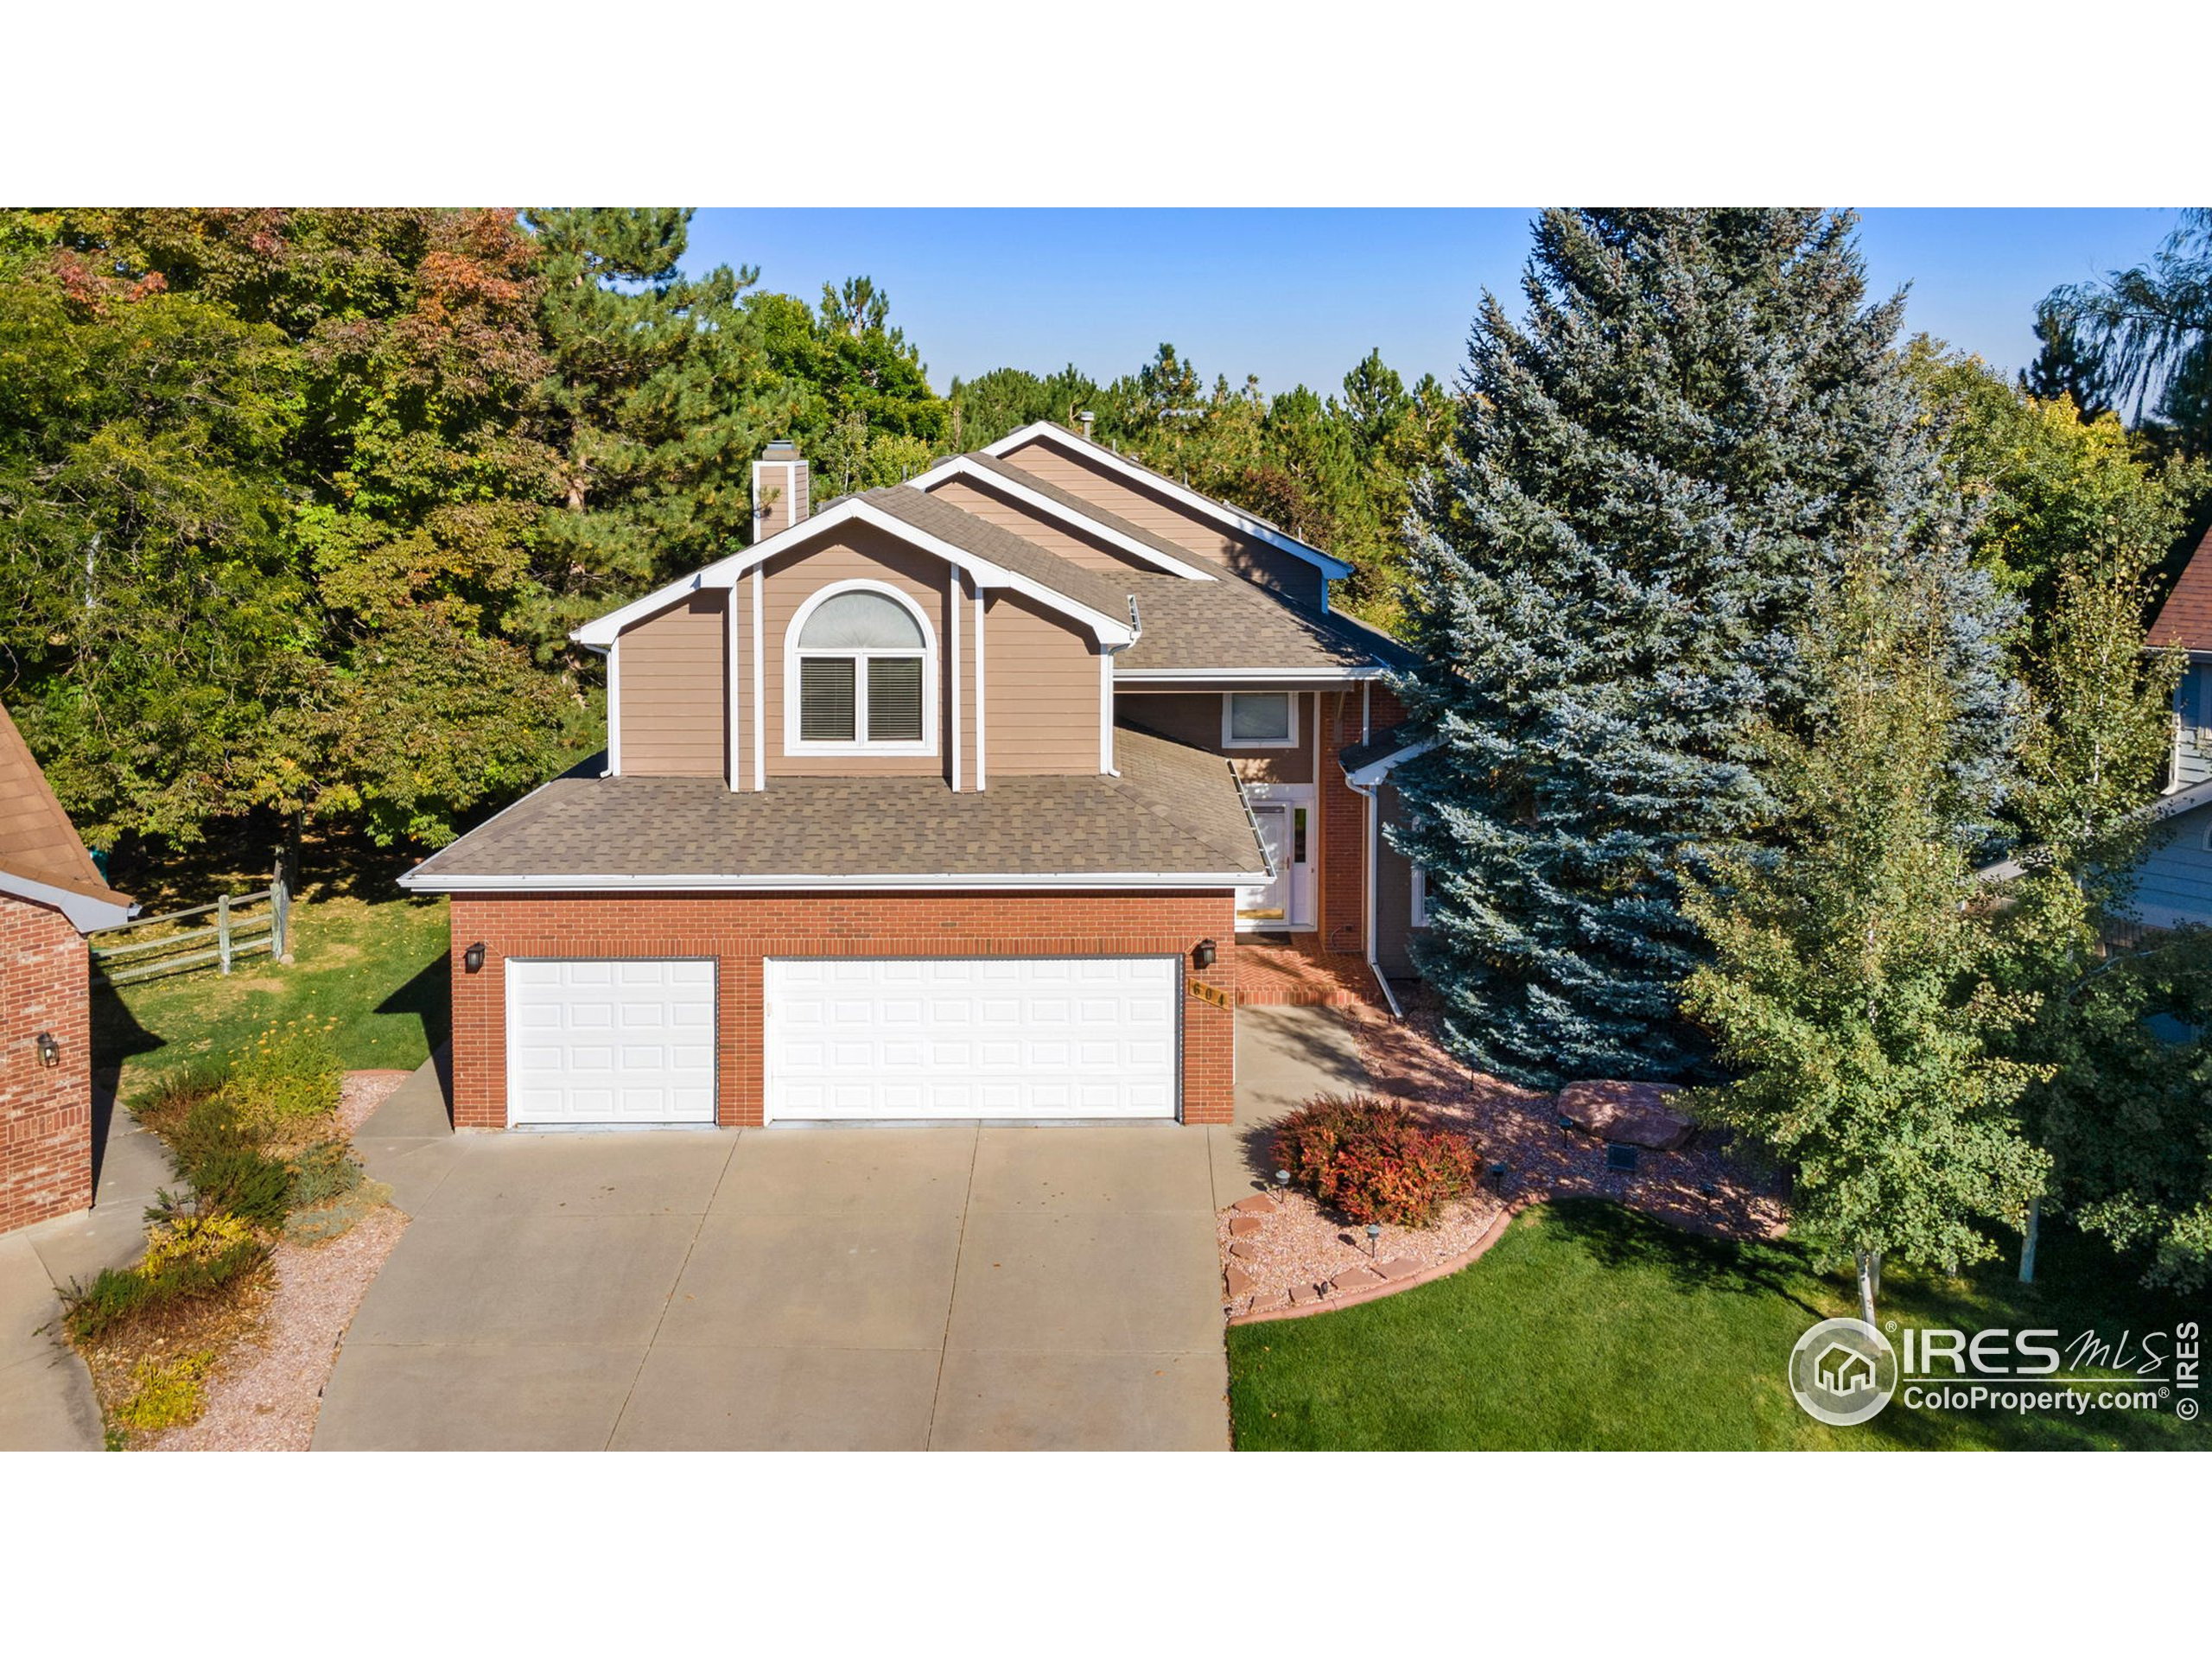 604 Hinsdale Ct, Fort Collins, CO 80526